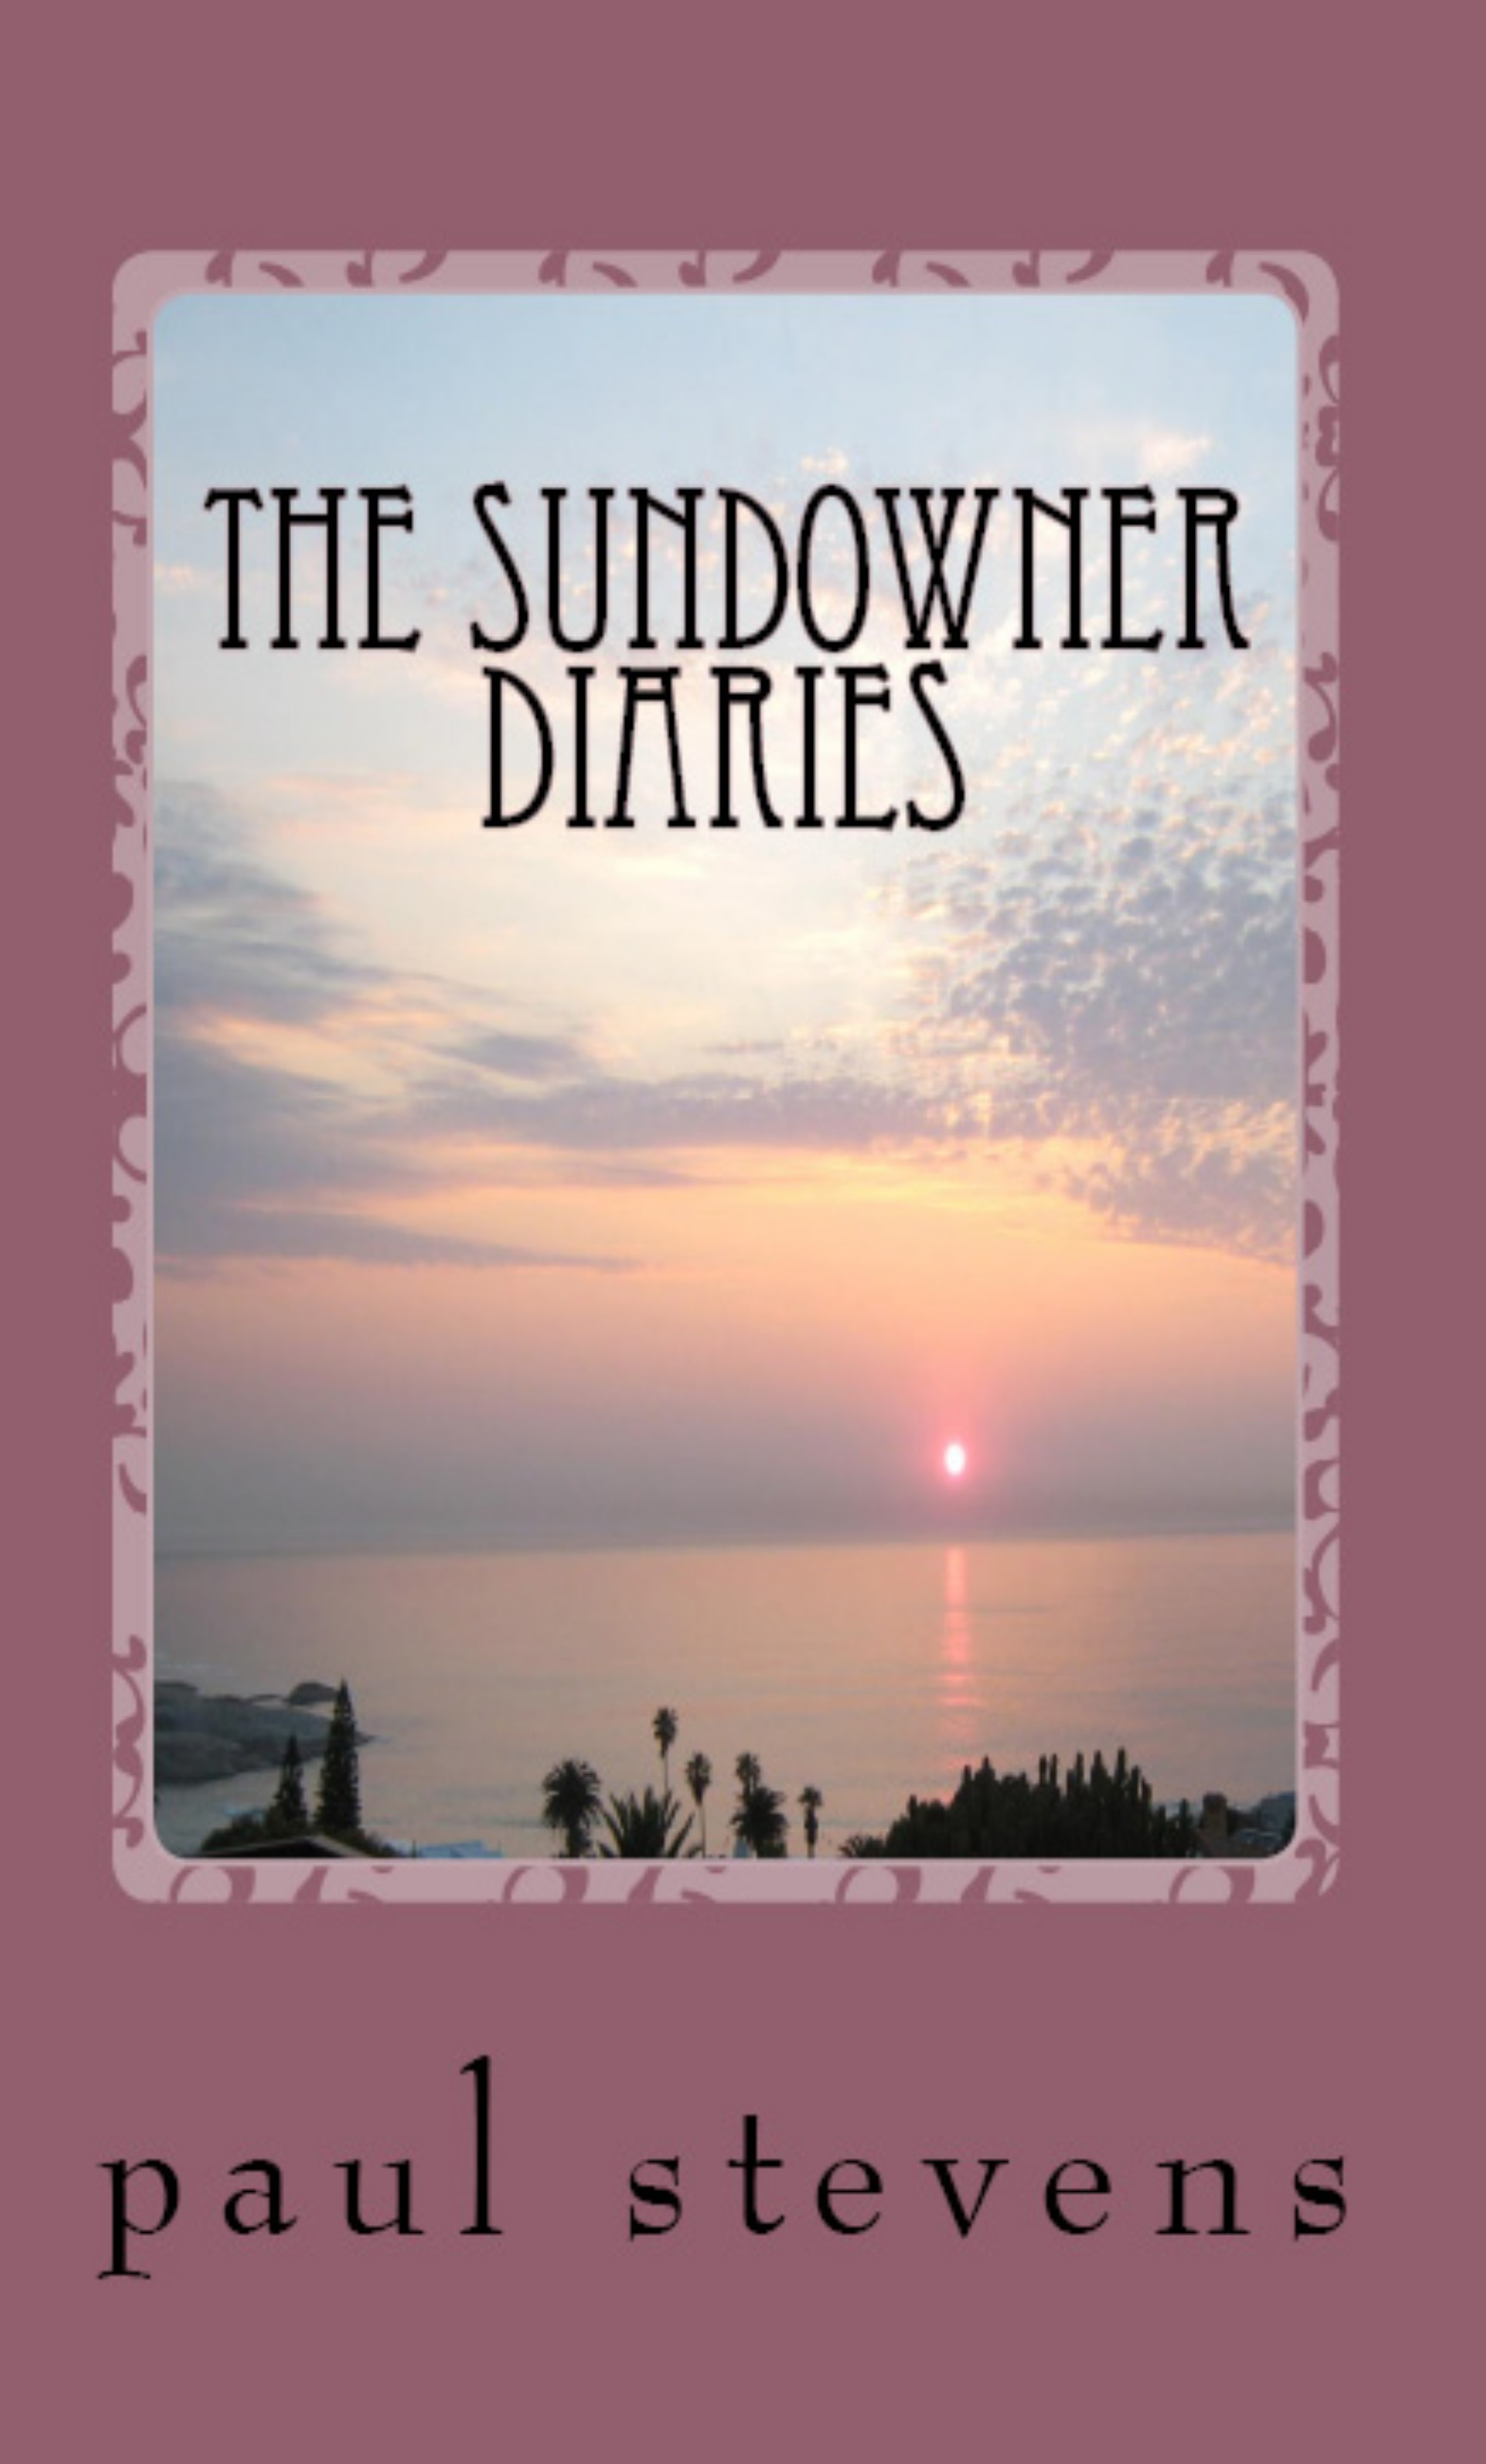 The Sundowner Diaries